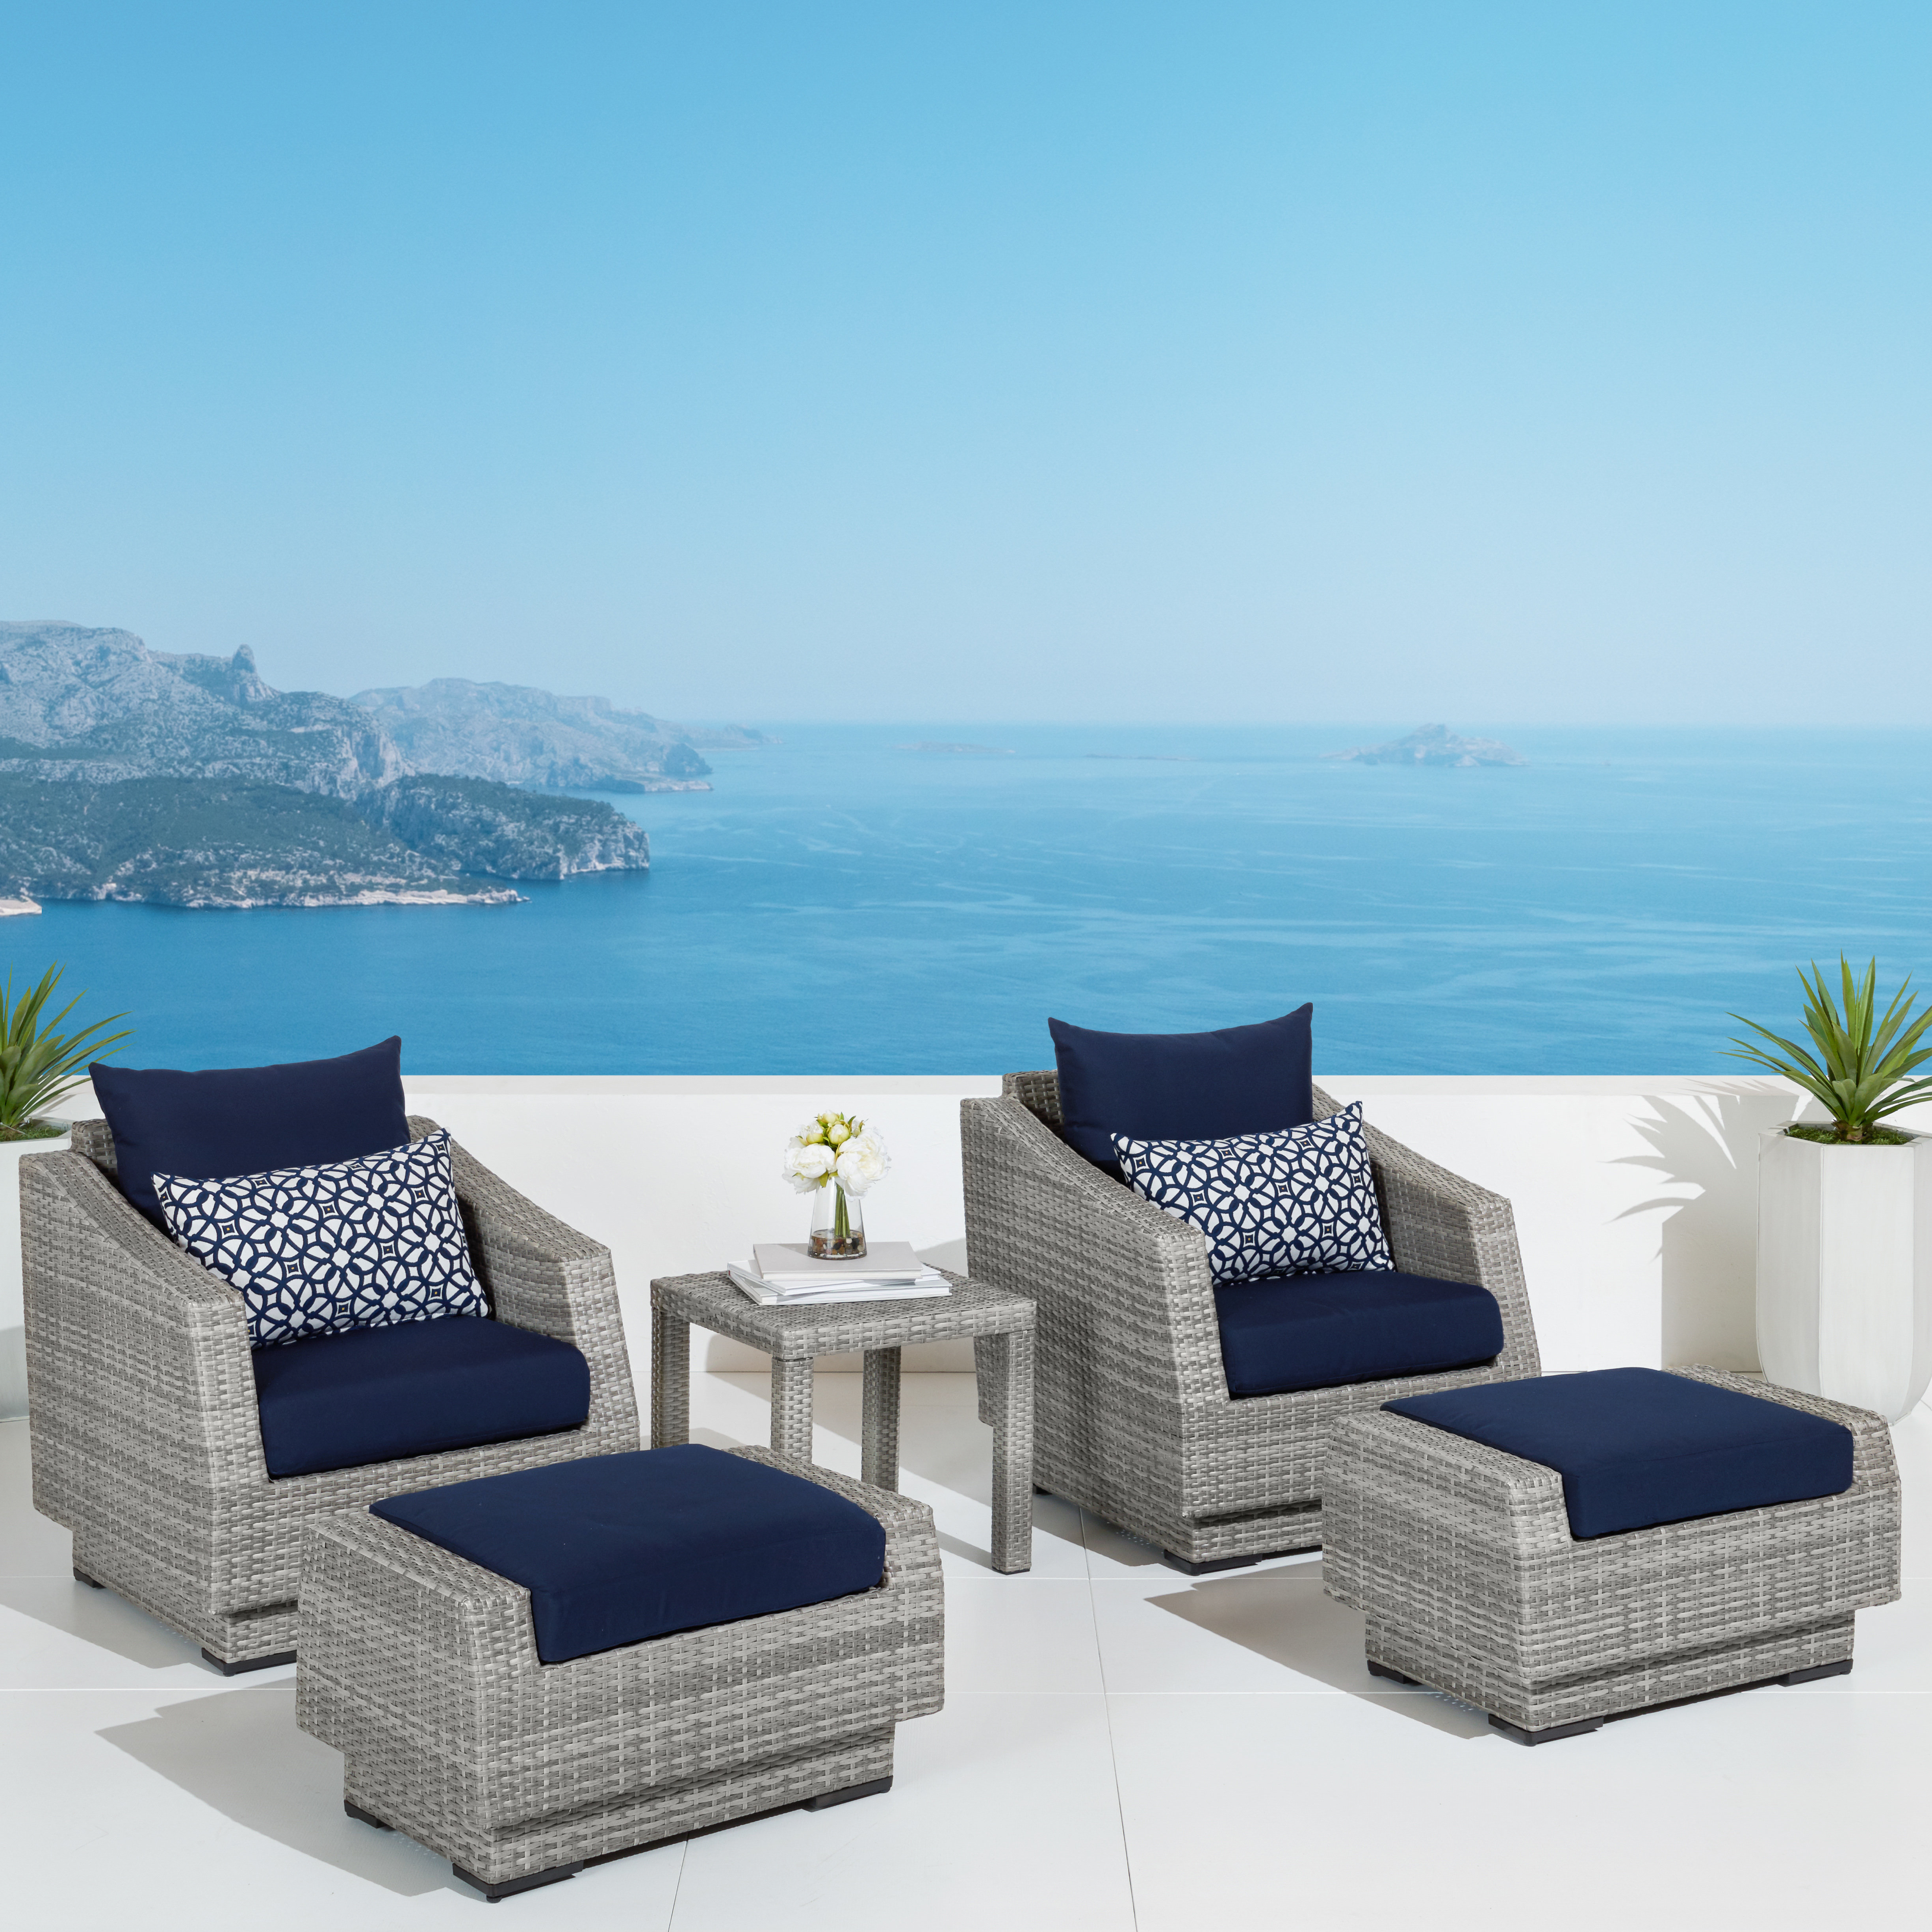 2019 Castelli 5 Piece Rattan Conversation Set With Cushions Inside Kunz Loveseats With Cushions (View 1 of 20)